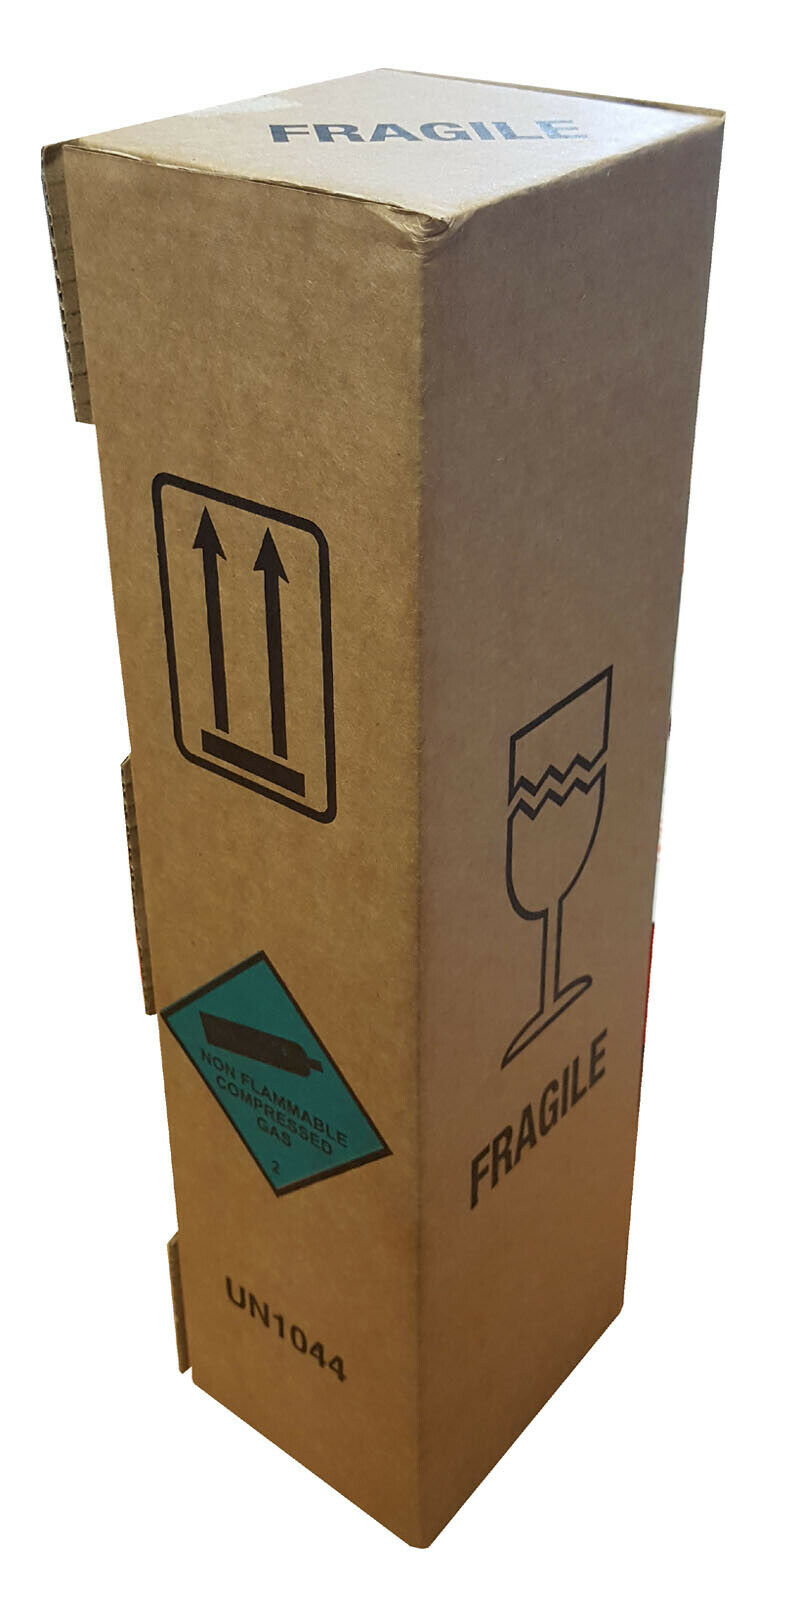 Strong Cardboard Boxes Printed Fragile Compressed Gas for Fire Extinguishers 163816516402 - Strong Cardboard Boxes Printed Fragile Compressed Gas for Fire Extinguishers